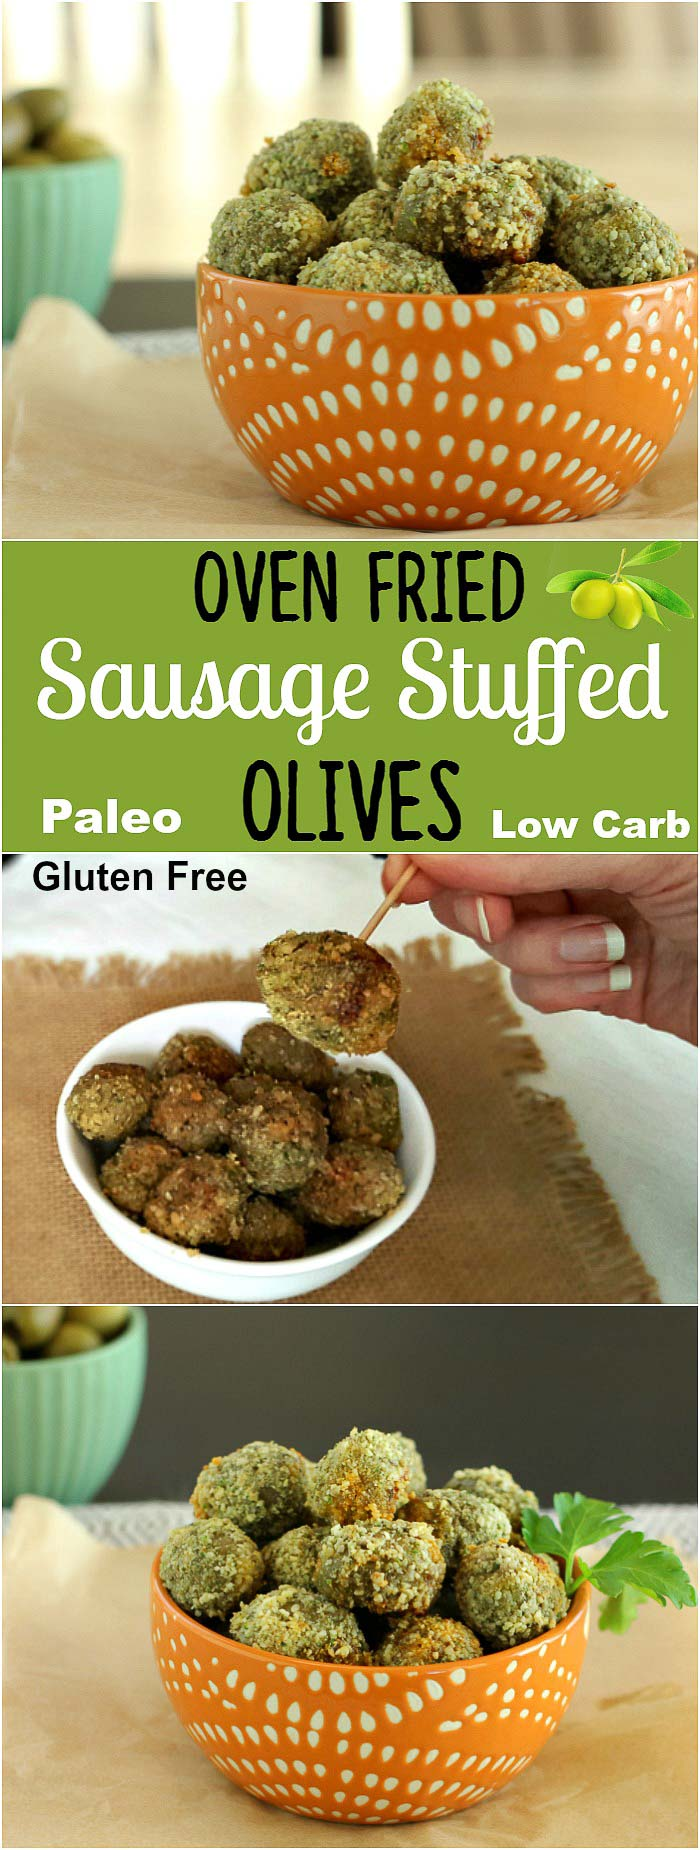 Oven Fried Stuffed Olives- Paleo, Low Carb & Gluten Free sausage stuffed olives that are gluten free breaded and oven fried.